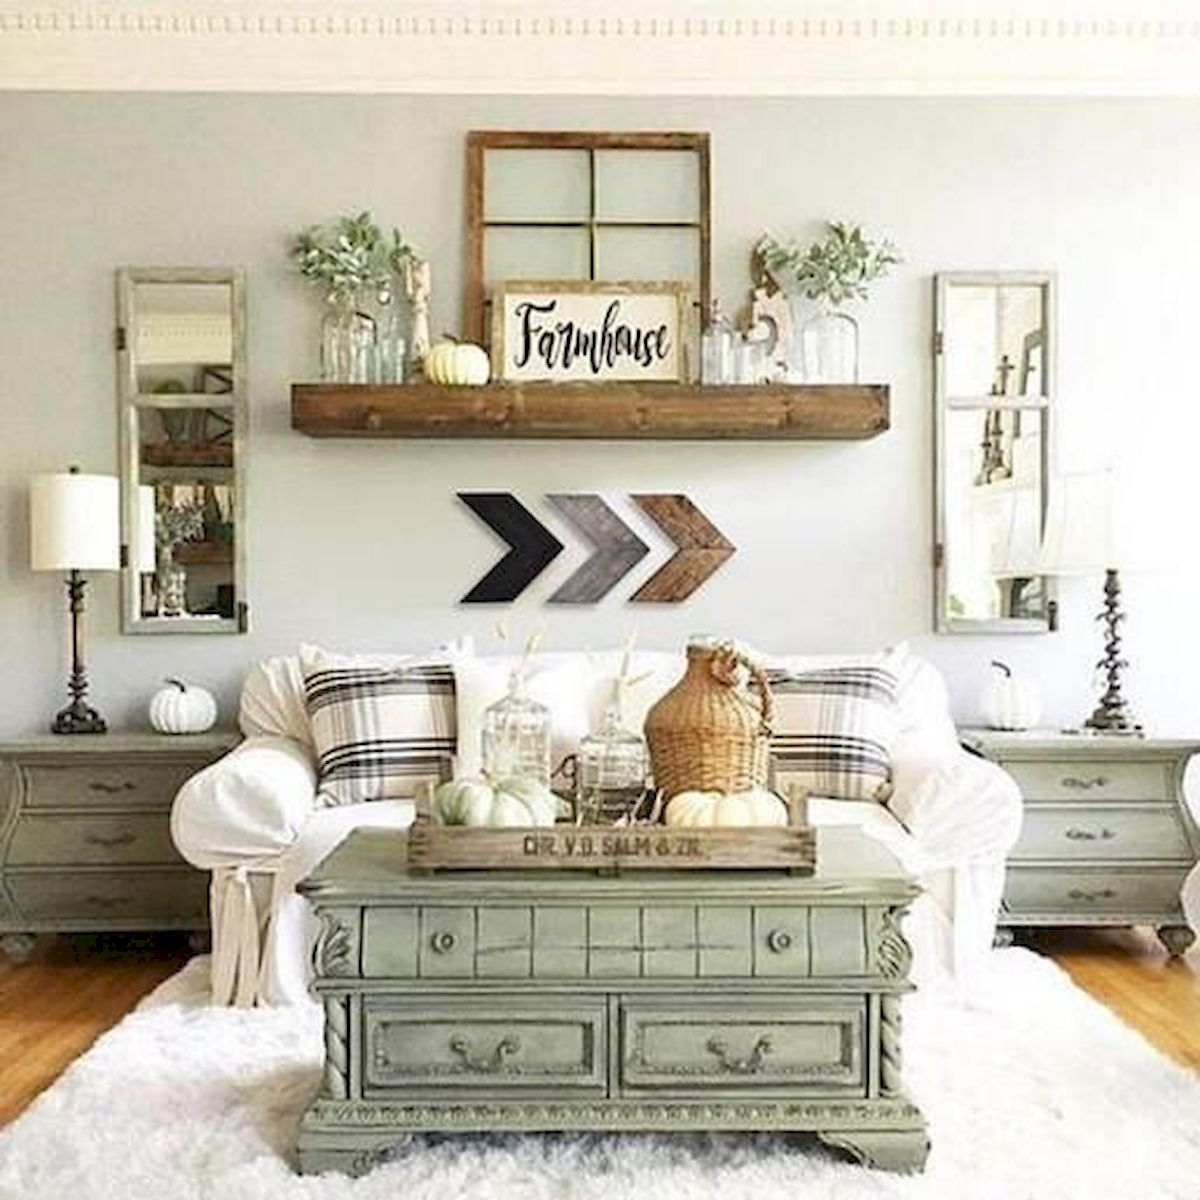 75 Best Farmhouse Wall Decor Ideas for Living Room (16)